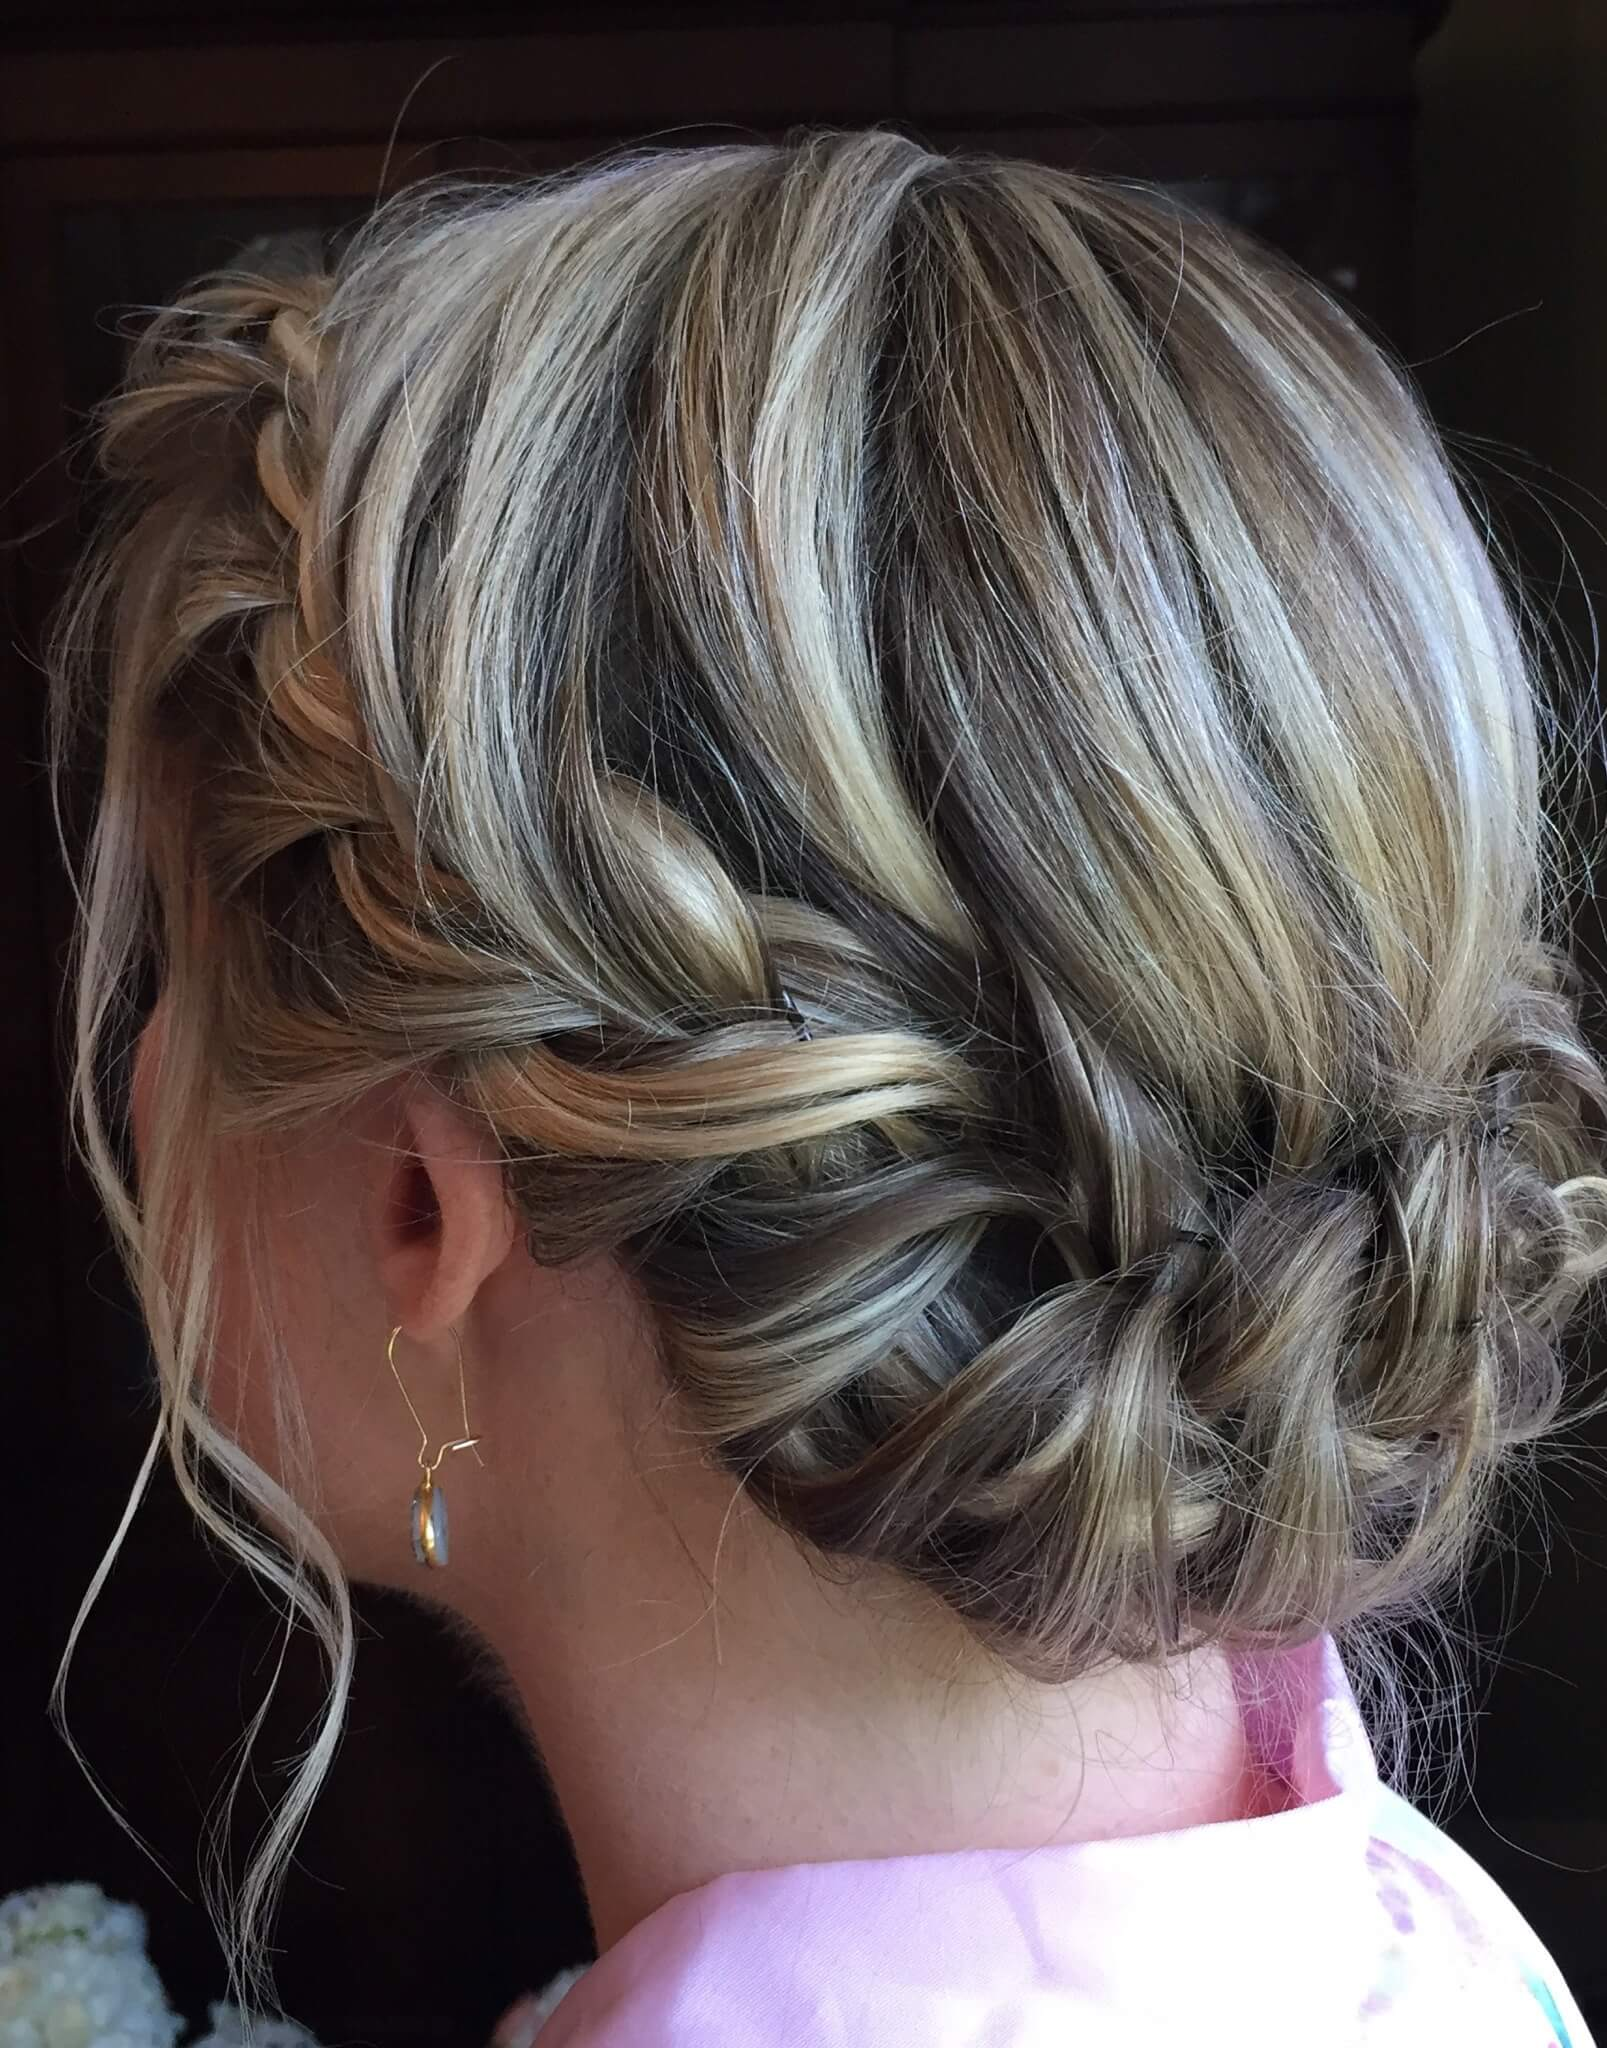 hair-salon-jacksonville-wedding-hairstyles-99-11